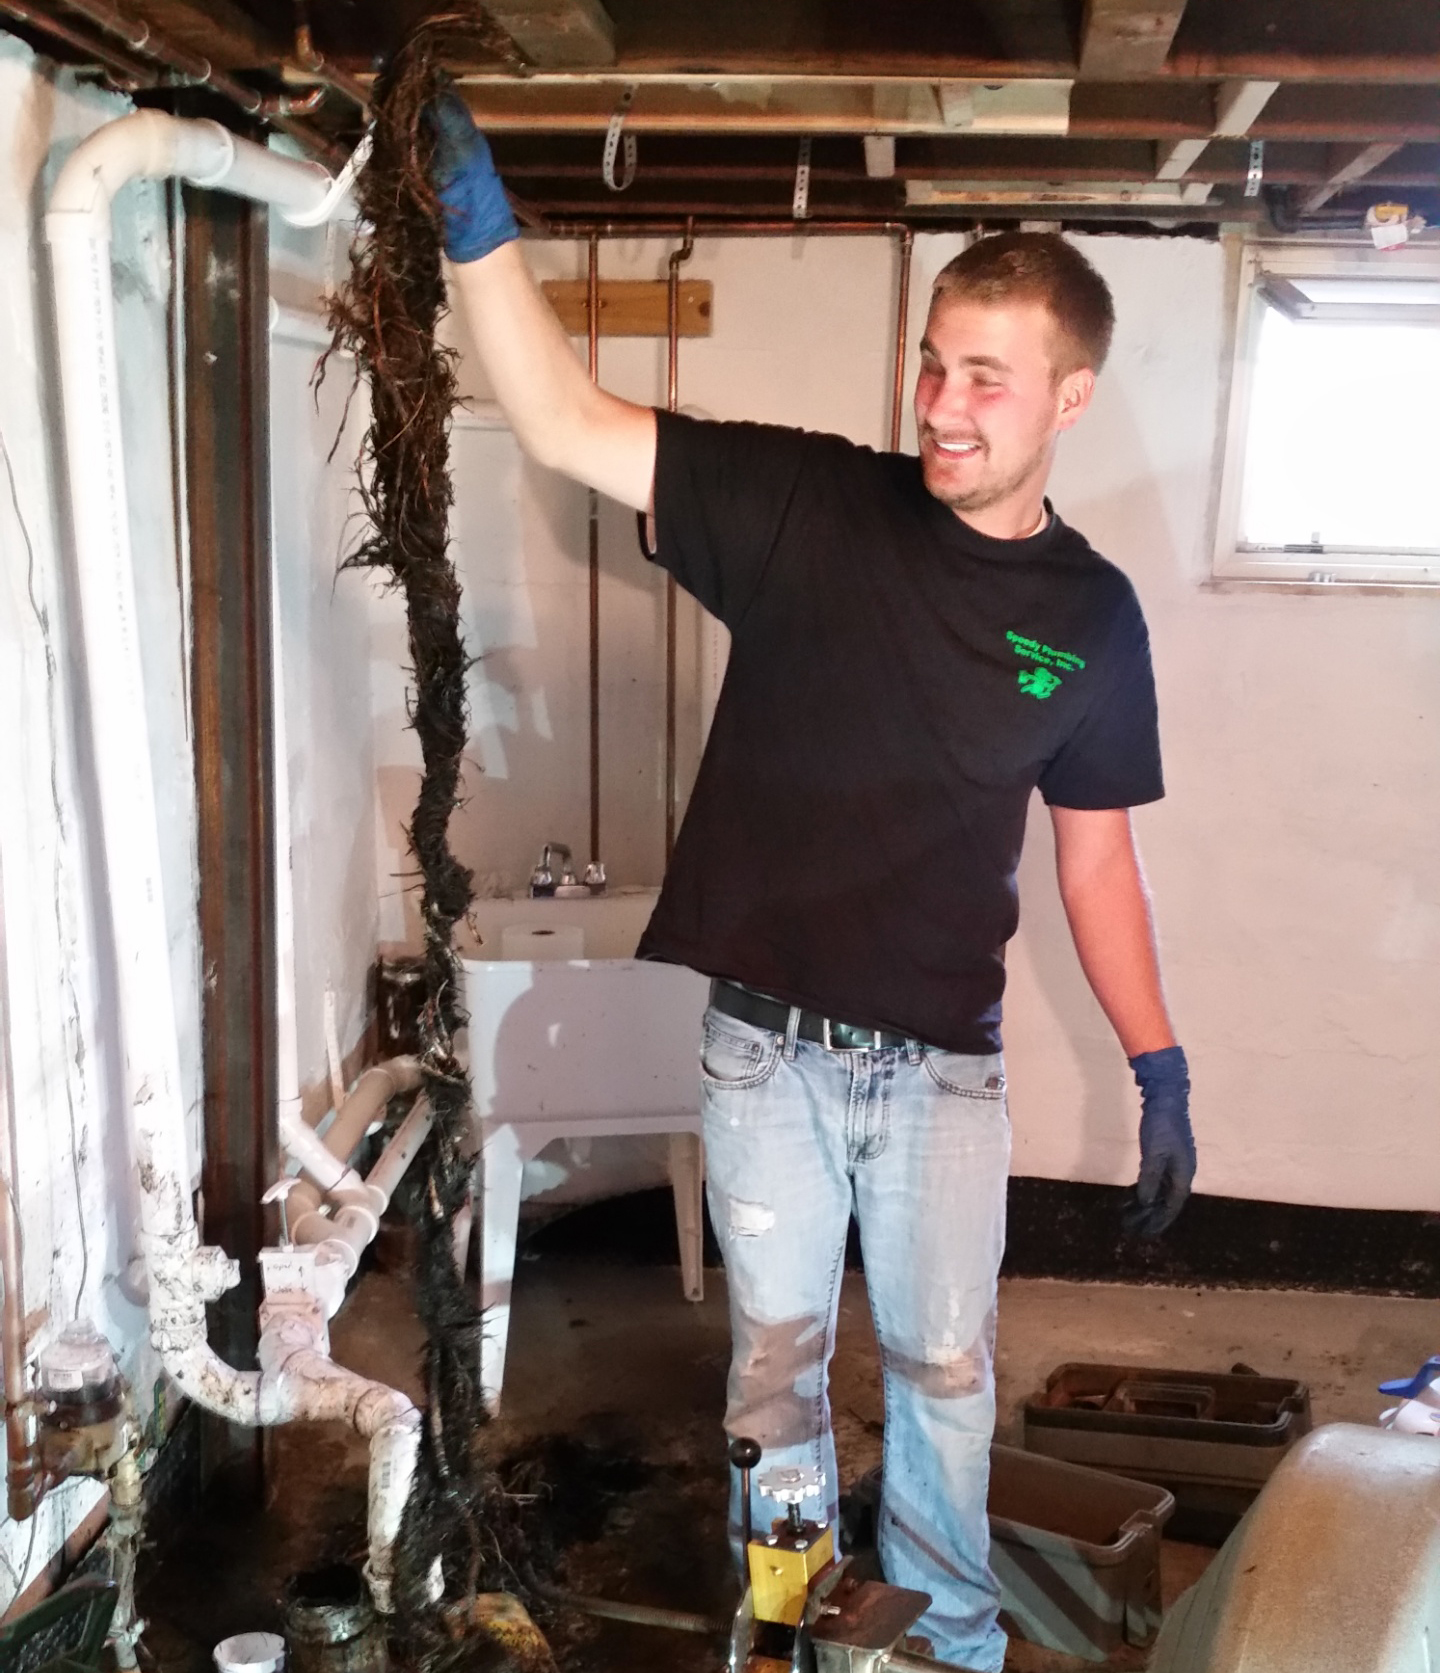 Speedy Plumbing employee unclogging drain